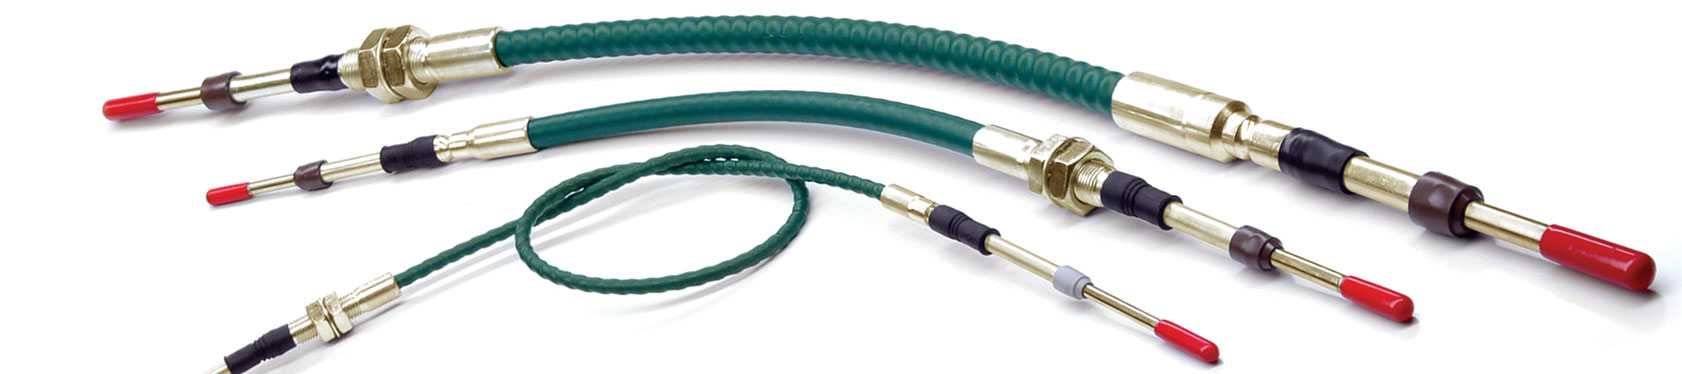 Push Pull Cable